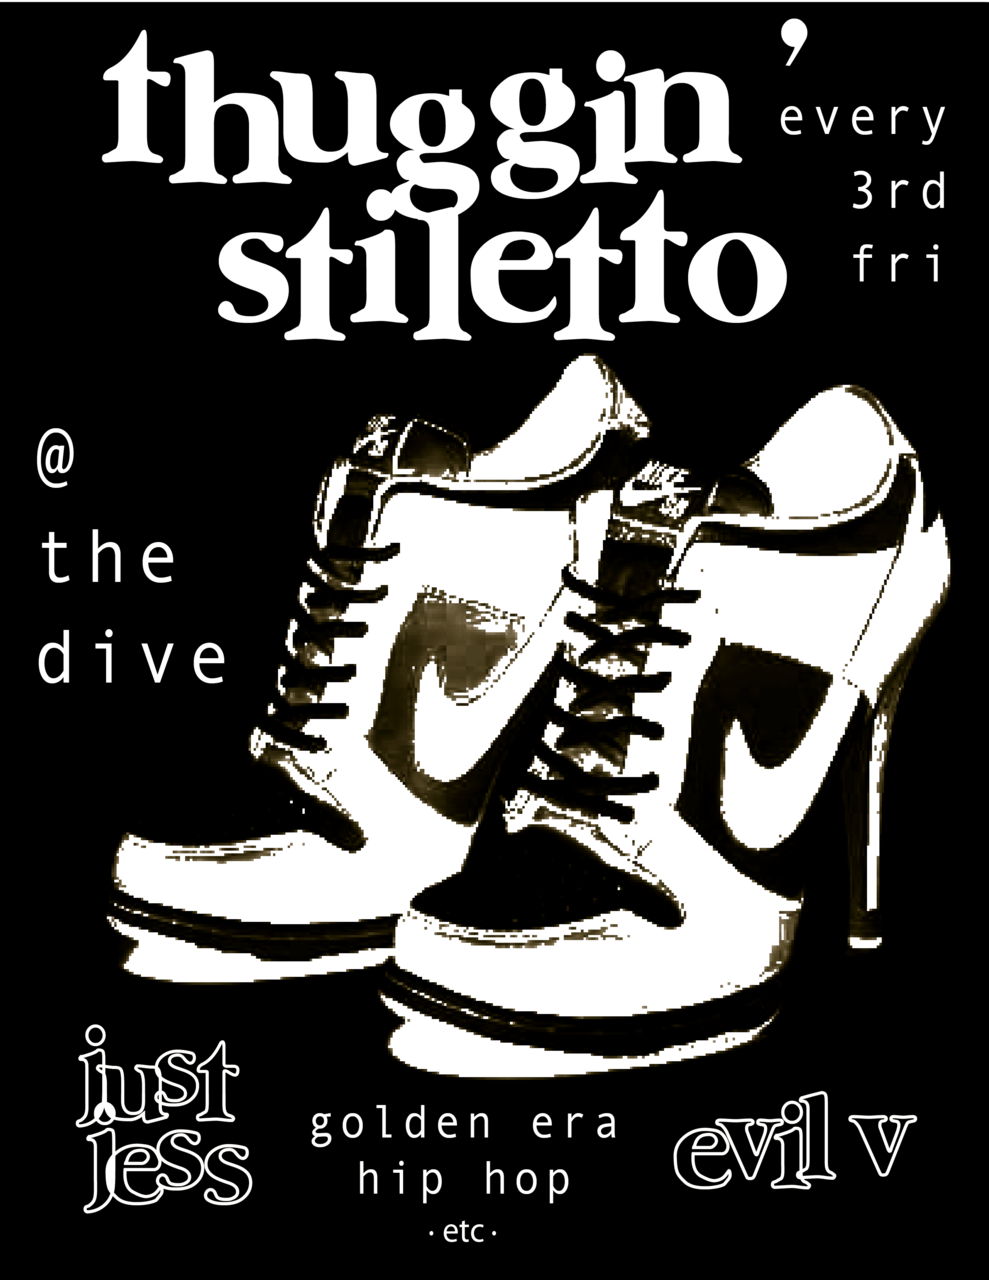 thuggin' stiletto IV @ the dive … it's that time again … !! only the best real hip hop !! x2 double trouble x2 ! expand your mind and move your feet at the same time ! xxx just jess X evil v xxx straight up . no chaser